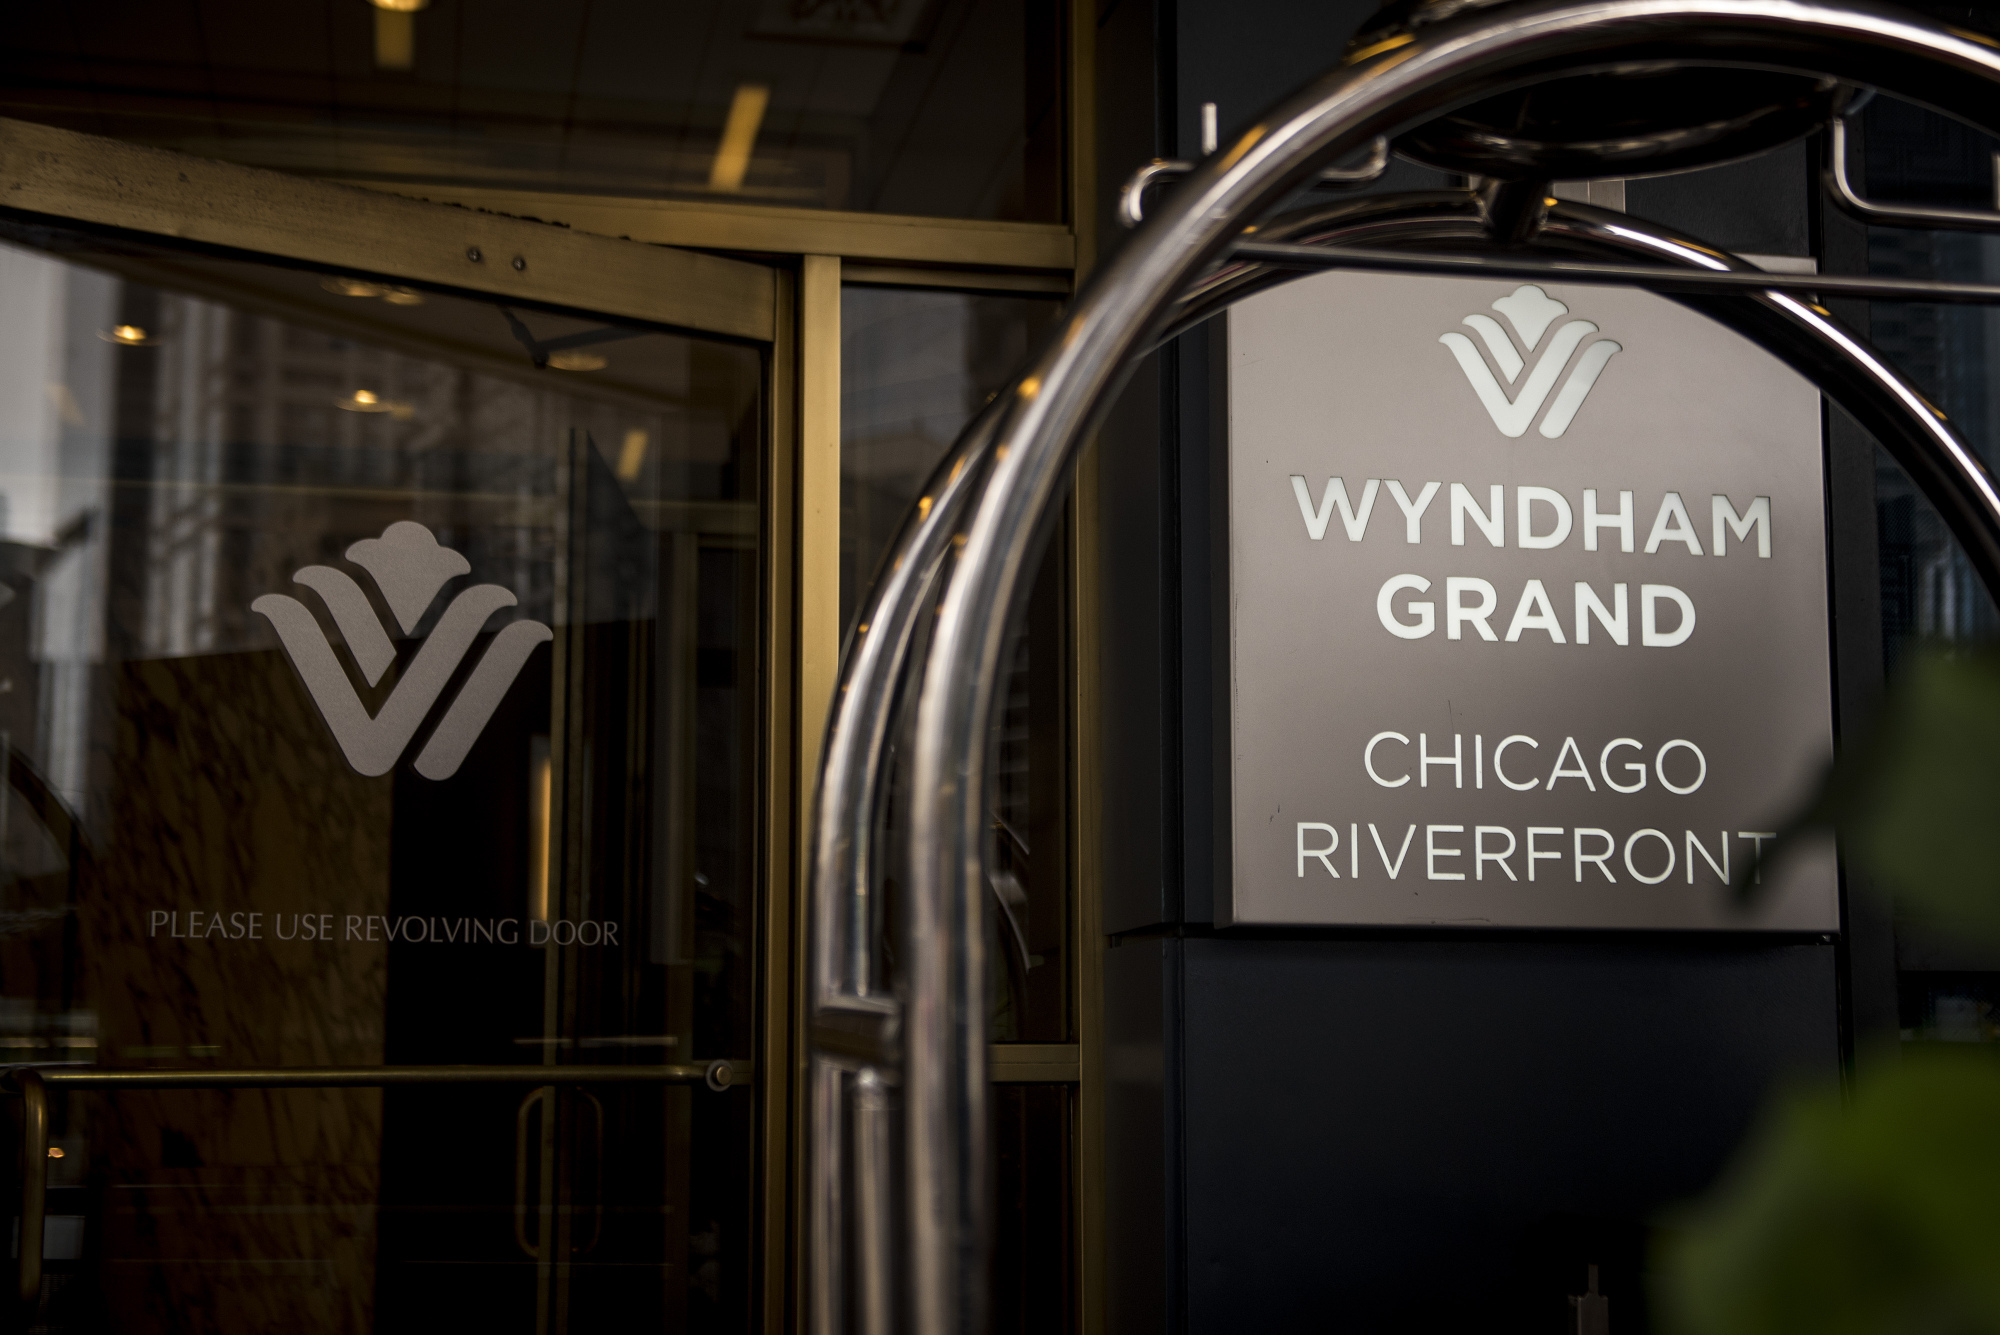 The Wyndham Grand Chicago Riverfront Hotel in downtown Chicago, IL on Thursday July 27, 2017. Photographer: Christopher Dilts/Bloomberg *** Local Caption ***